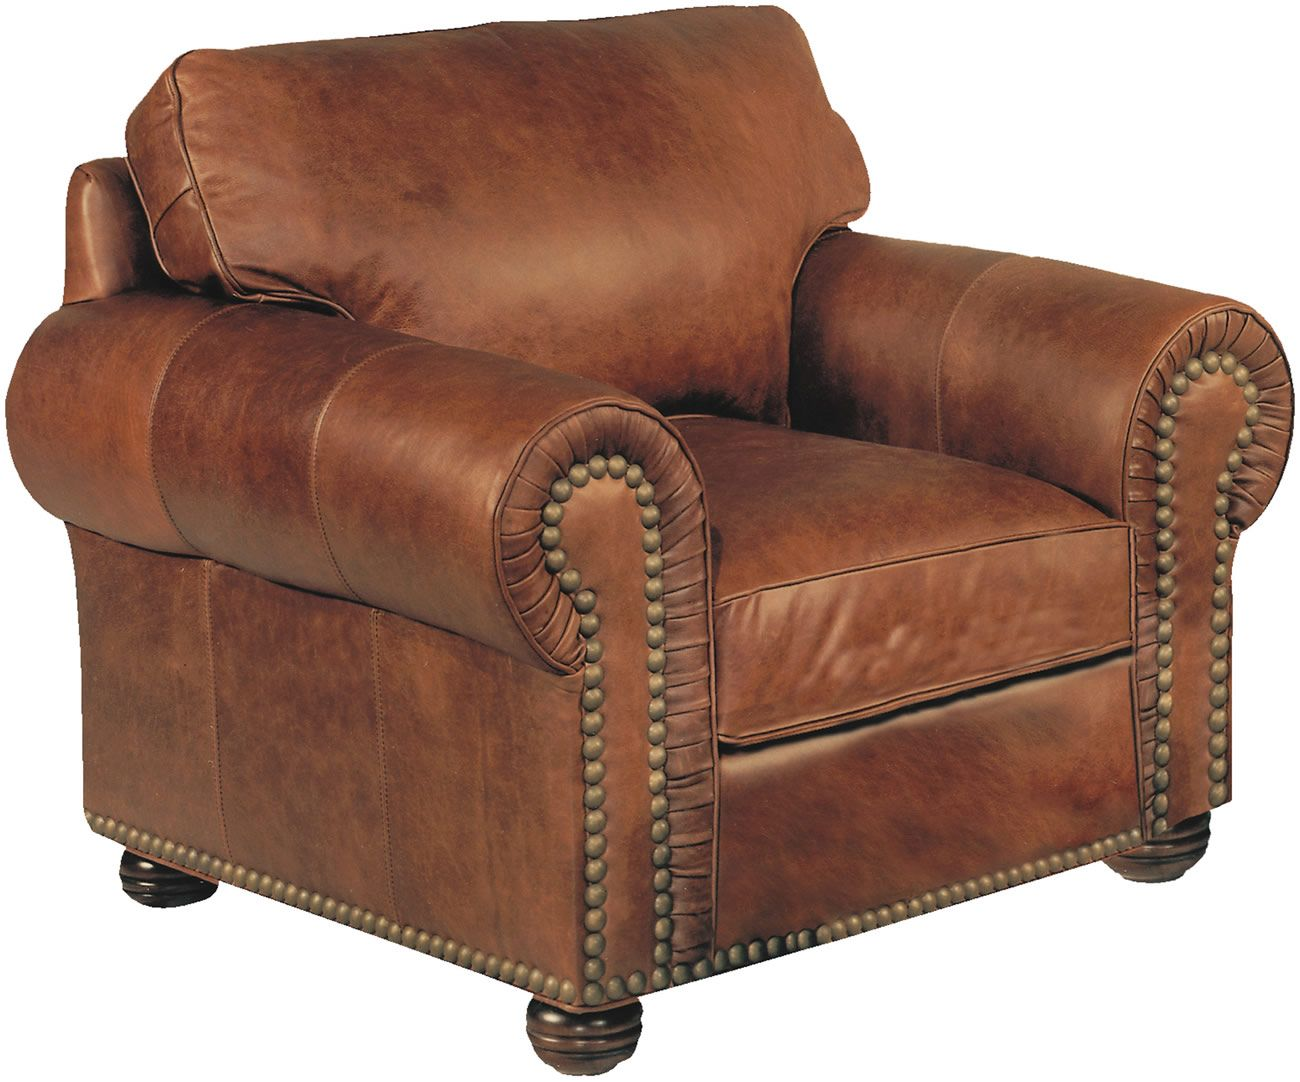 Stickley Hutchinson Leather Chair with nailhead trim | Stickley